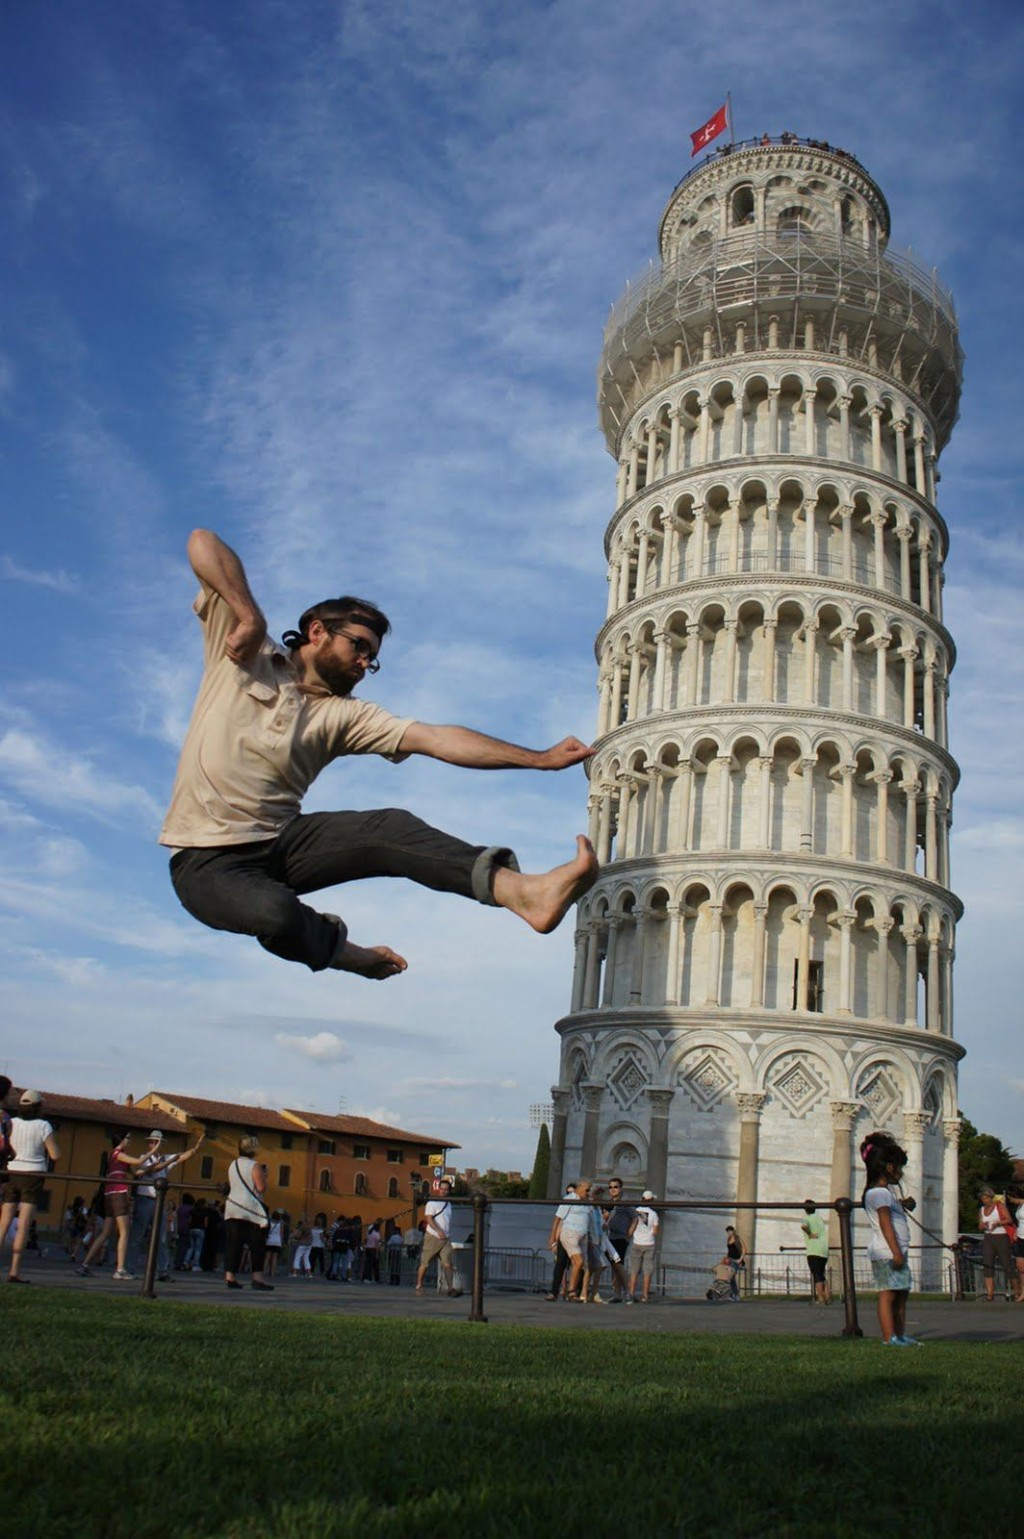 Leaning Tower Pisa, 10 Amazing Tourist Photos at the Leaning Tower of Pisa - Italy ...